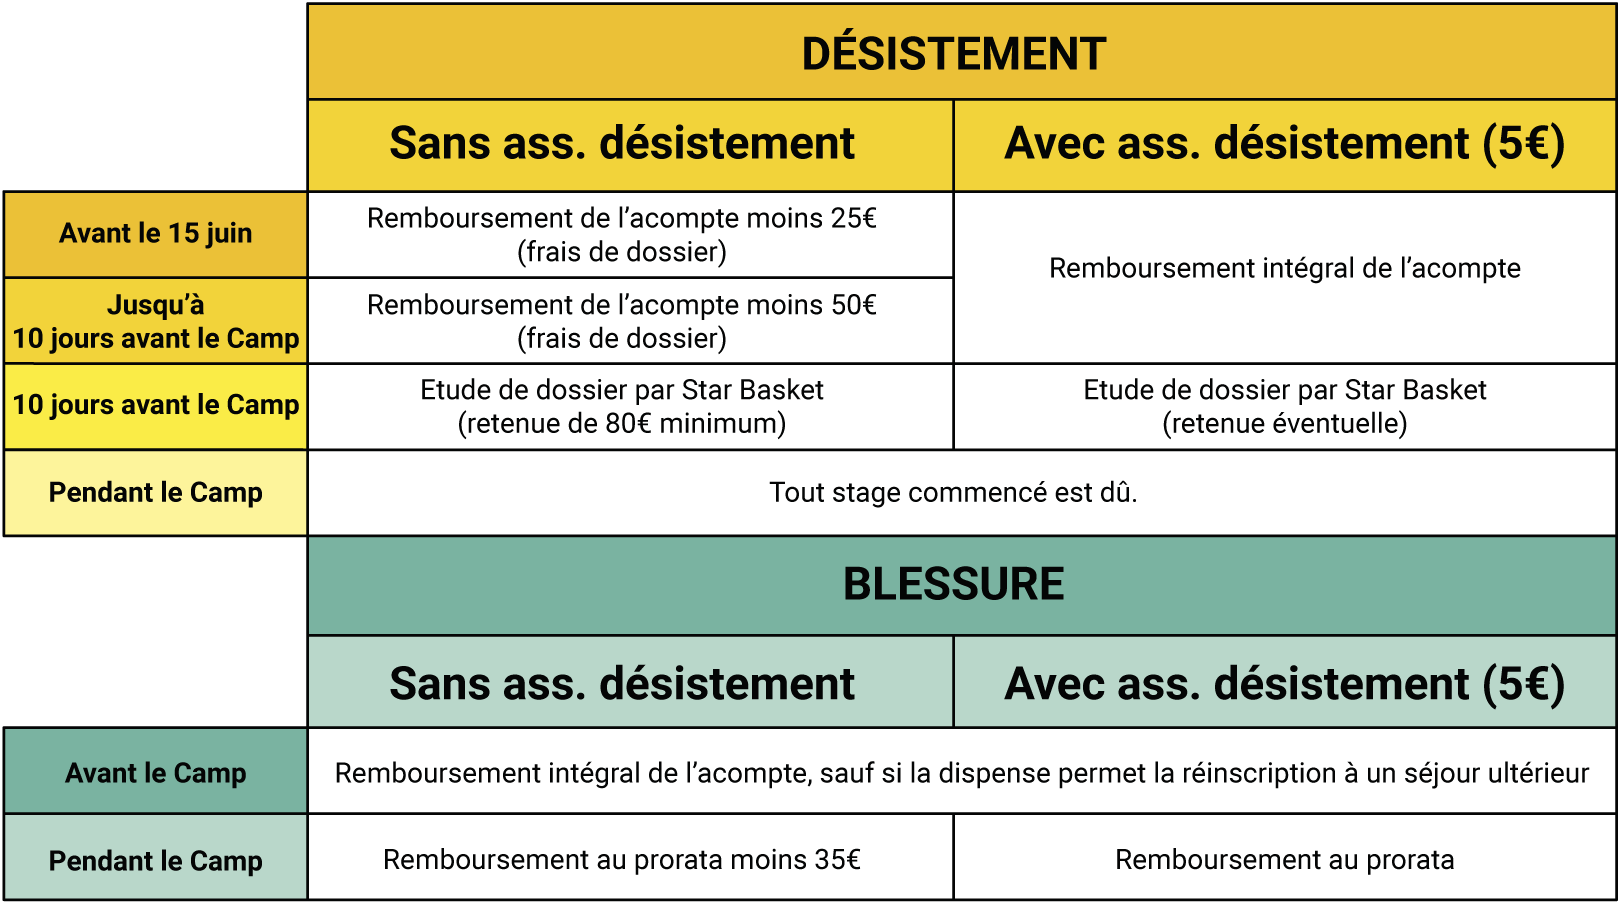 Les conditions d'annulation